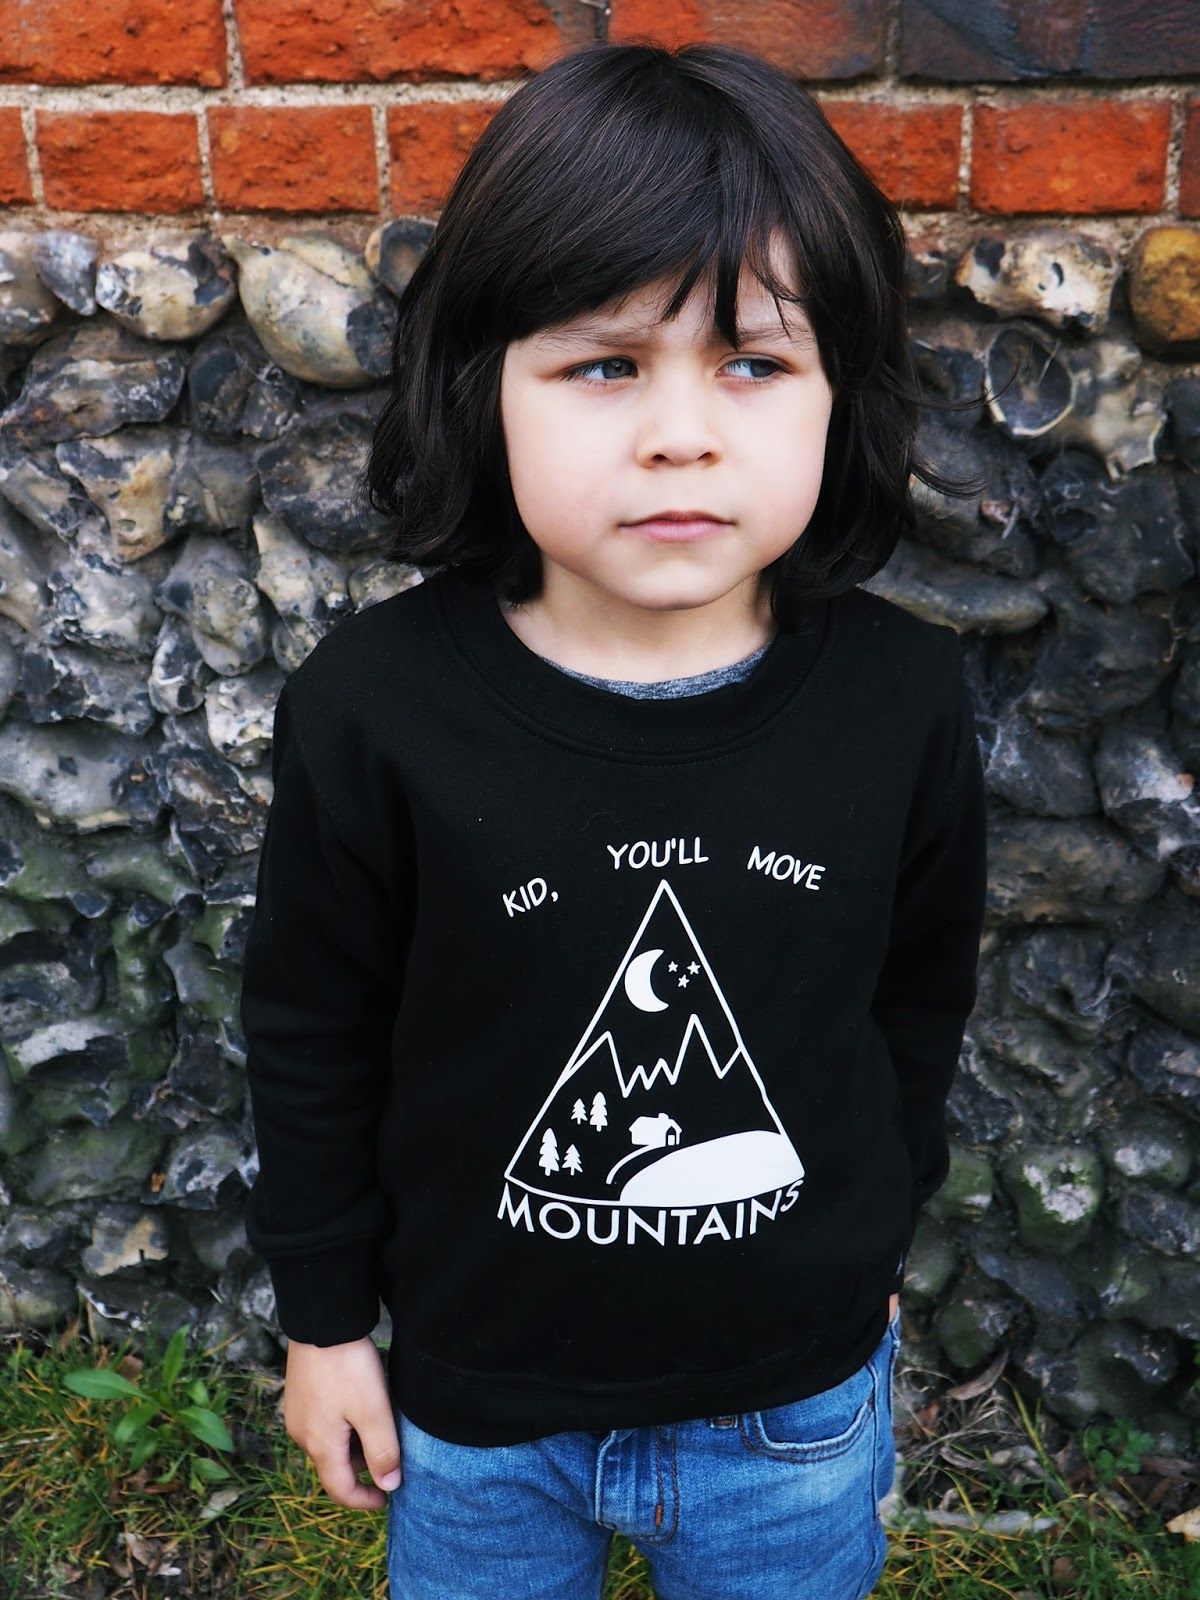 Kid you will move mountains sweater